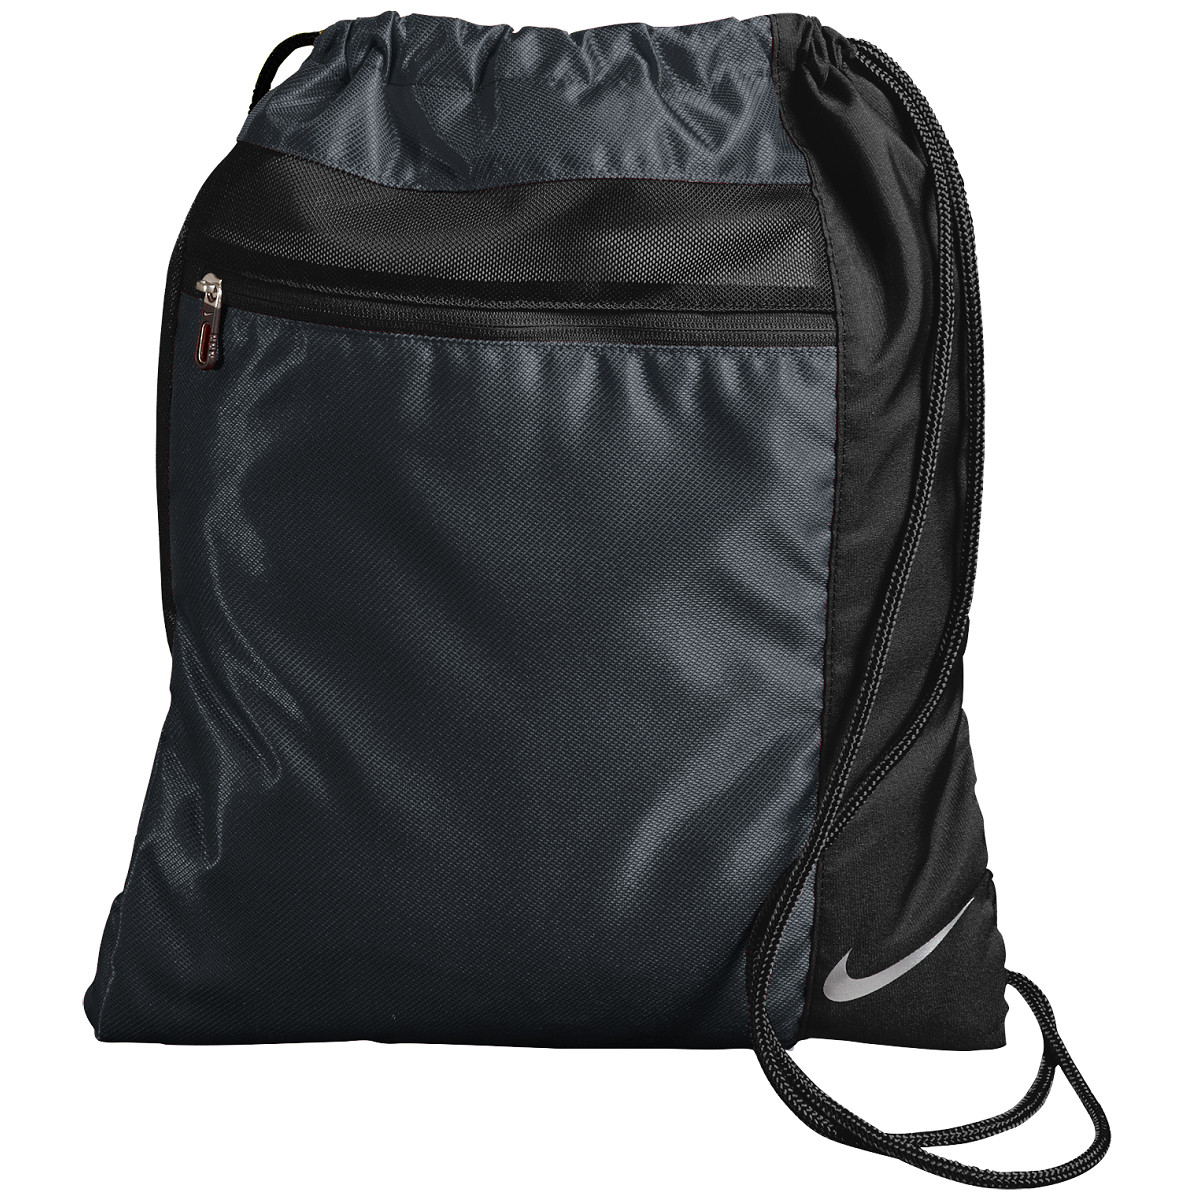 0e9e20770d Nike TG0274 Cinch Sack - Black Black